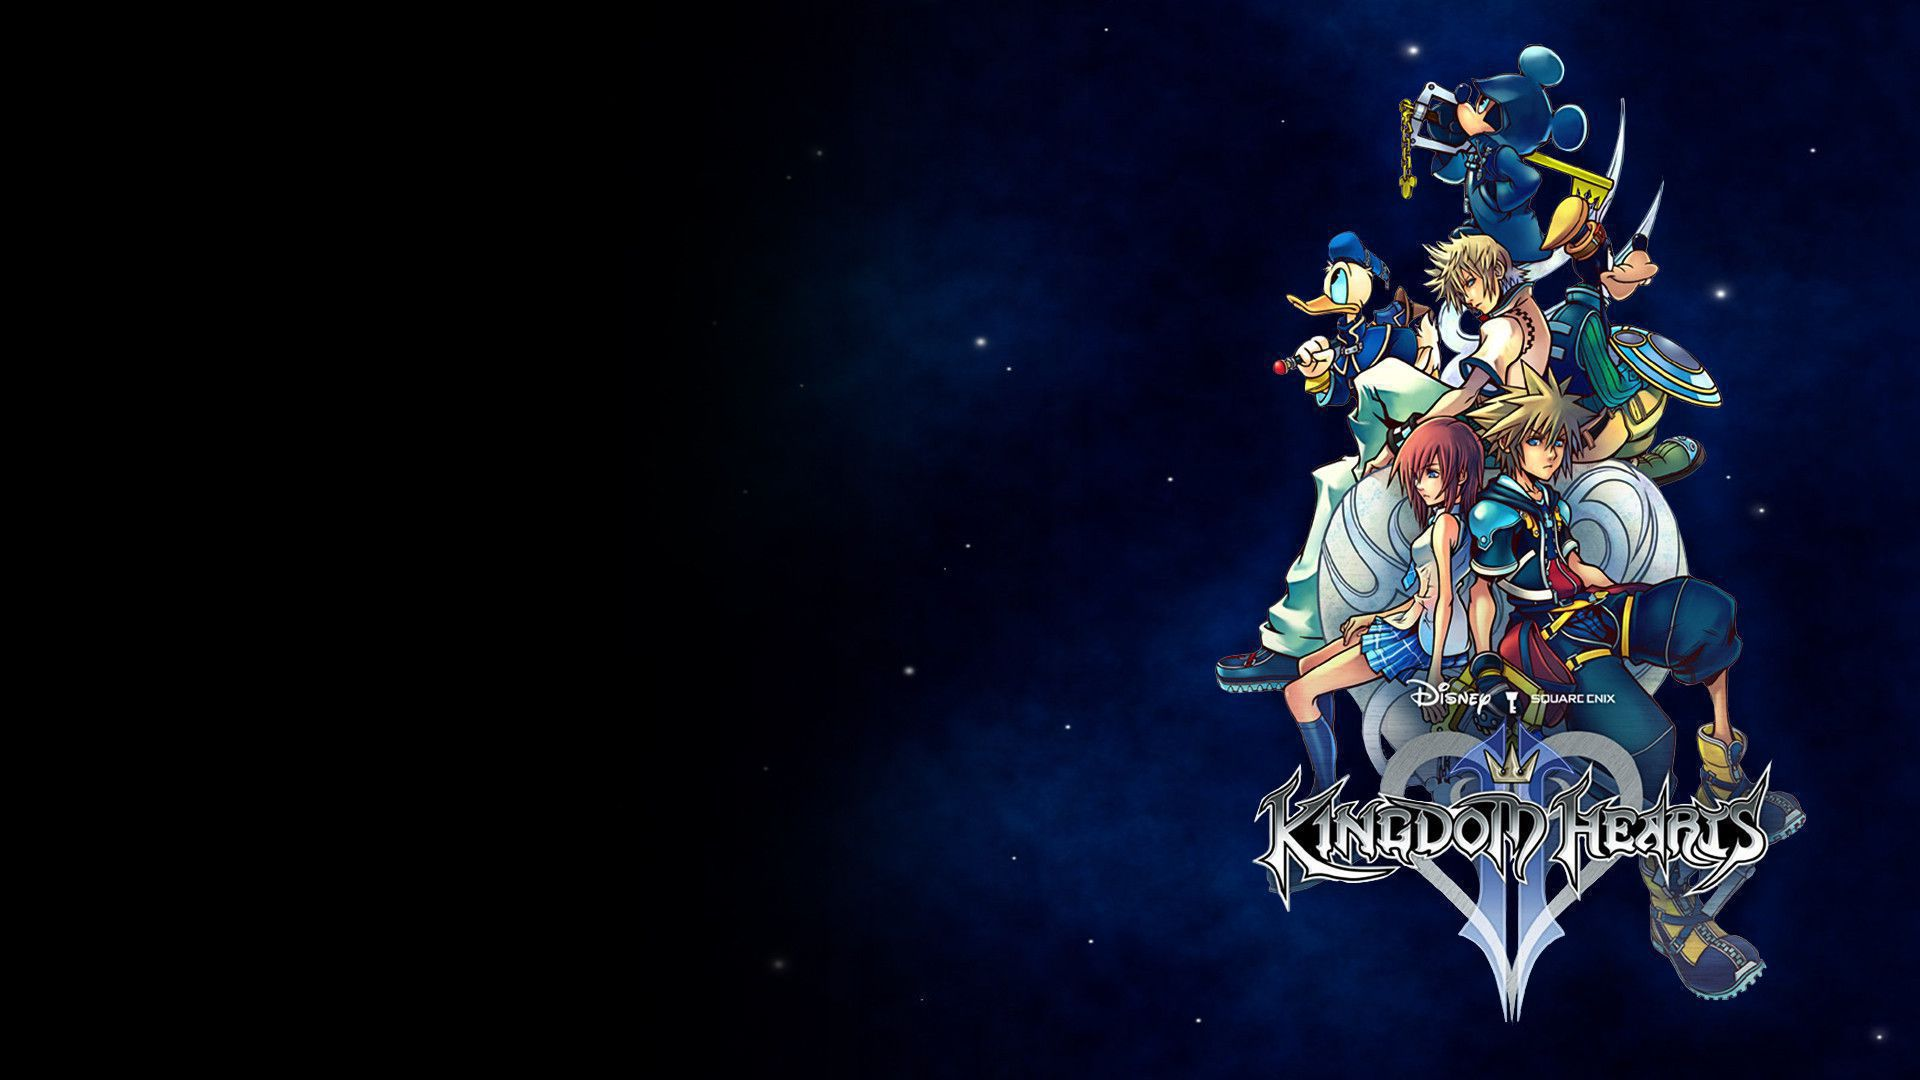 Kingdom Hearts 3 Wallpaper Pack